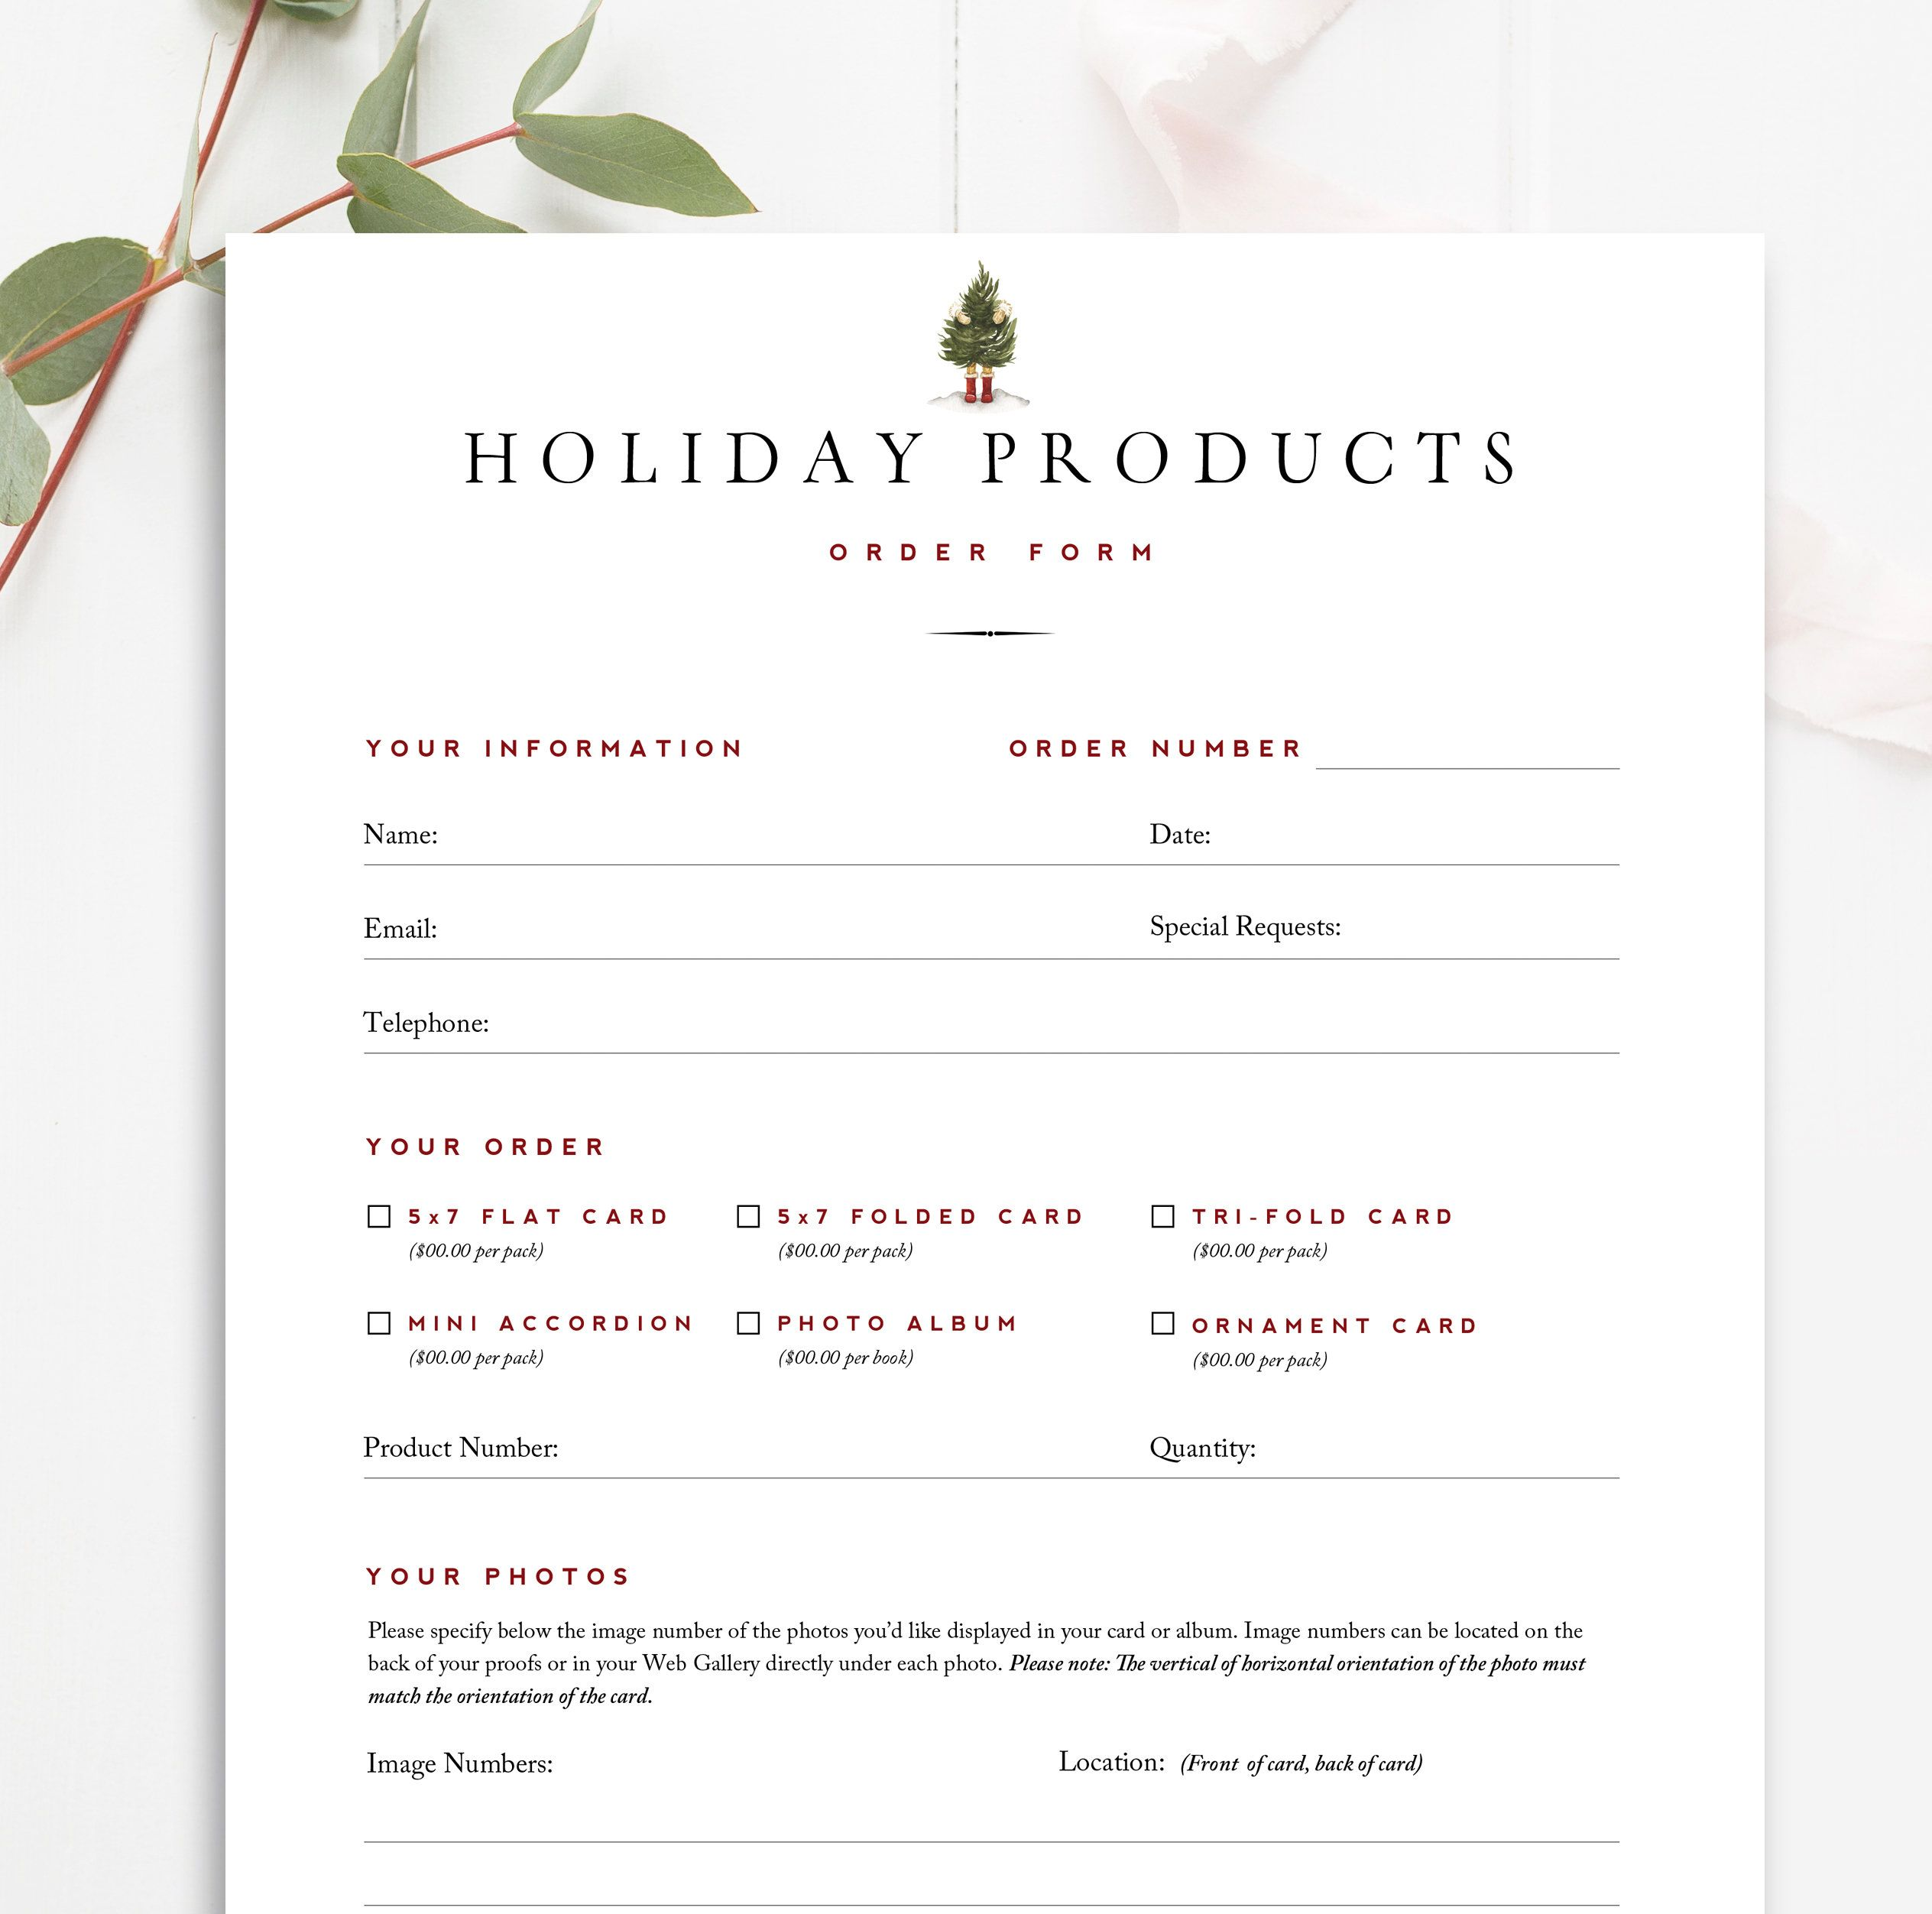 Christmas Card Order Form Photographer Forms Photoshop Etsy Photoshop Template Design Mini Session Template Product Catalog Template